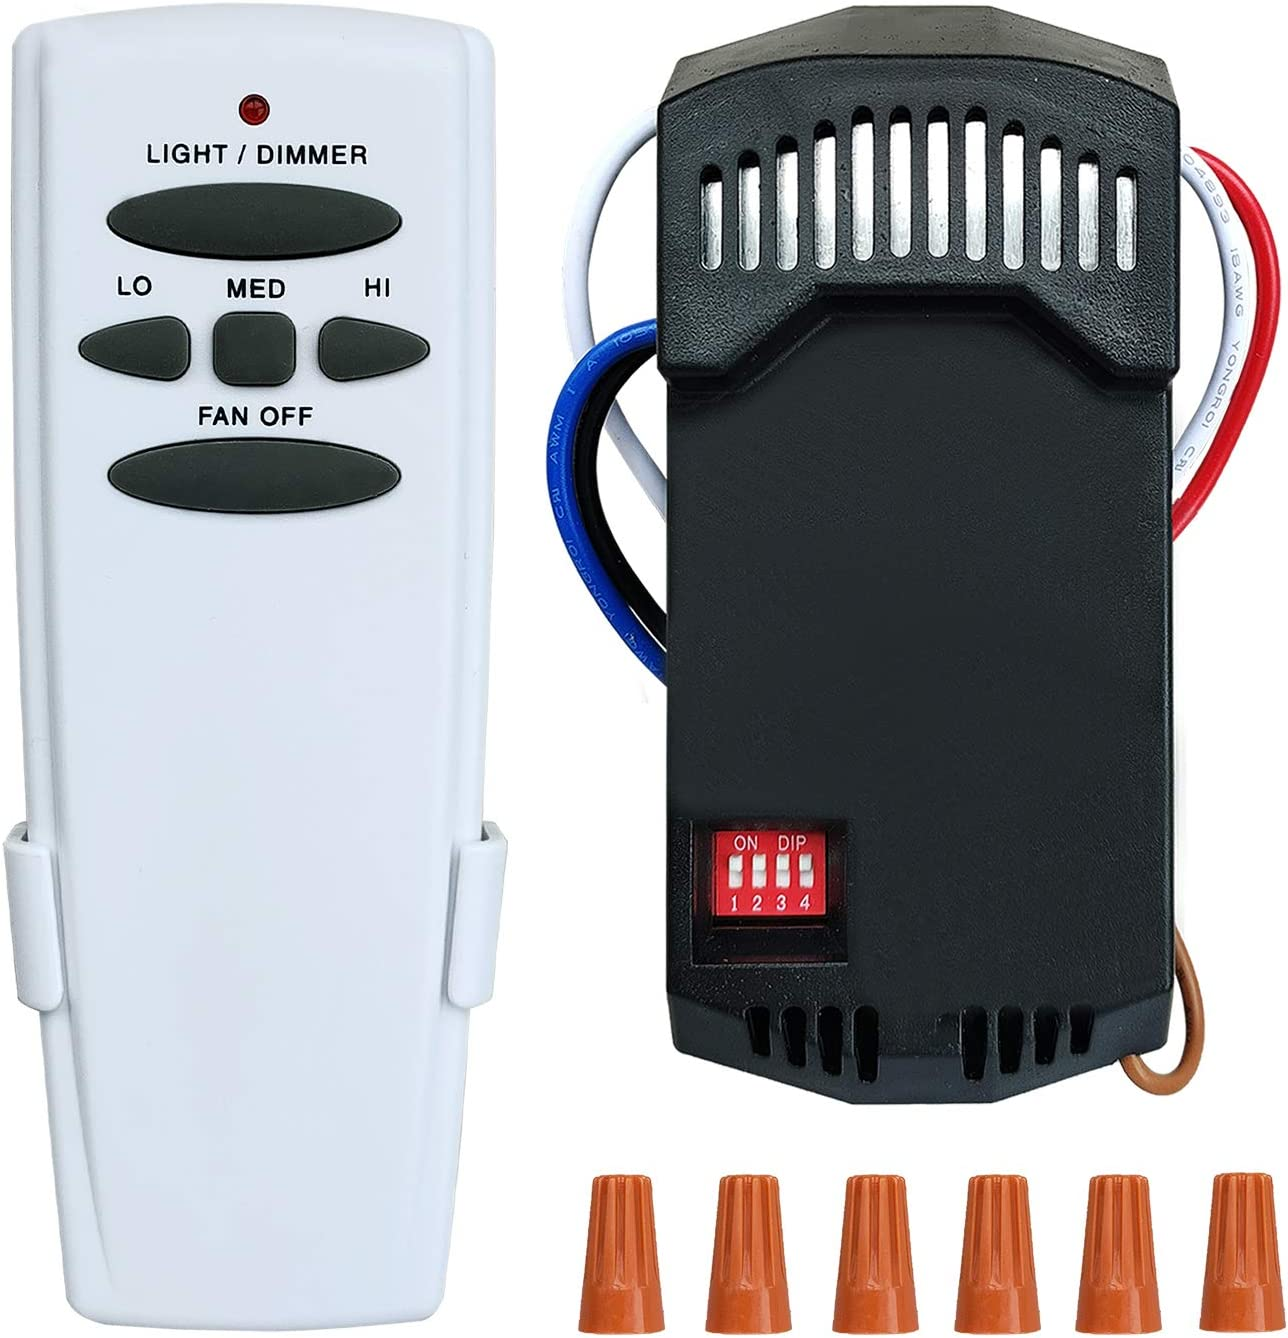 YOUZIY Universal Ceiling Fan Remote Re Receiver Some Ranking TOP1 reservation and Control Kit